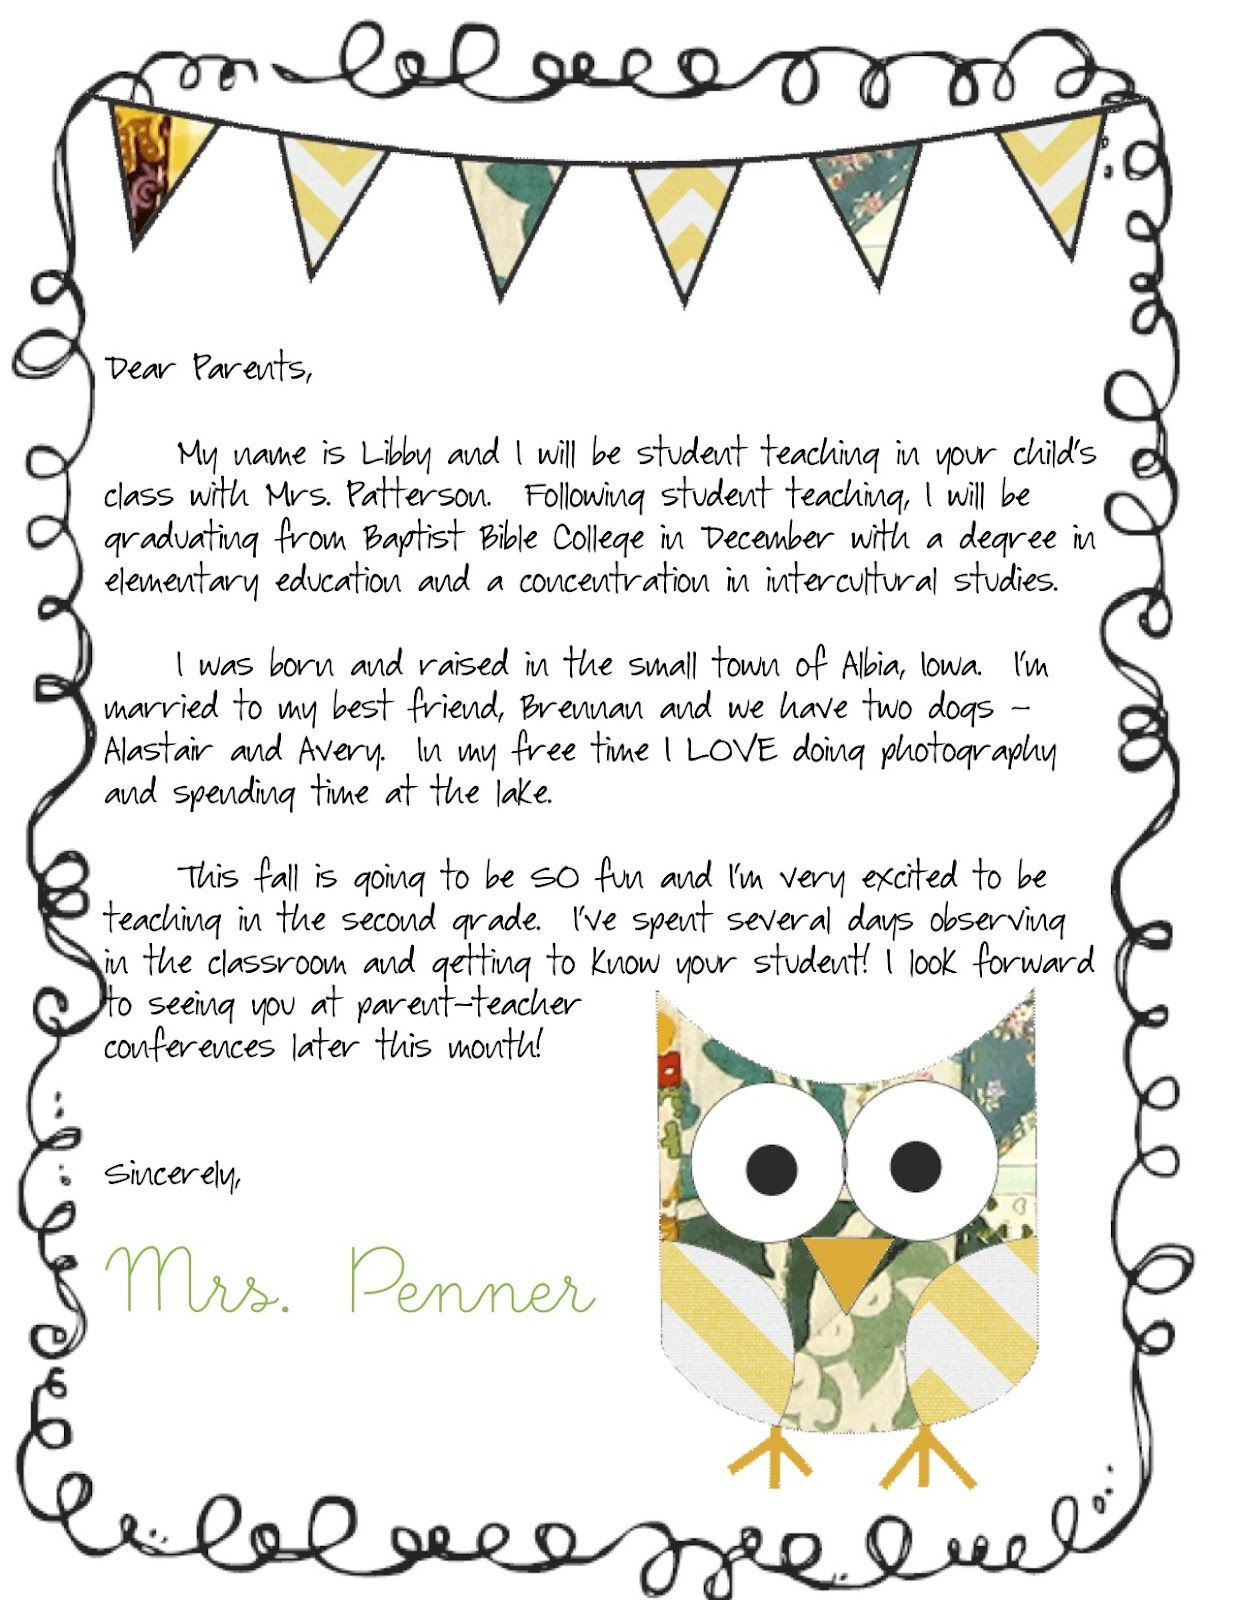 Teacher Welcome Letter to Parents Template - Meet the Teacher Letter Classroom Ideas Pinterest